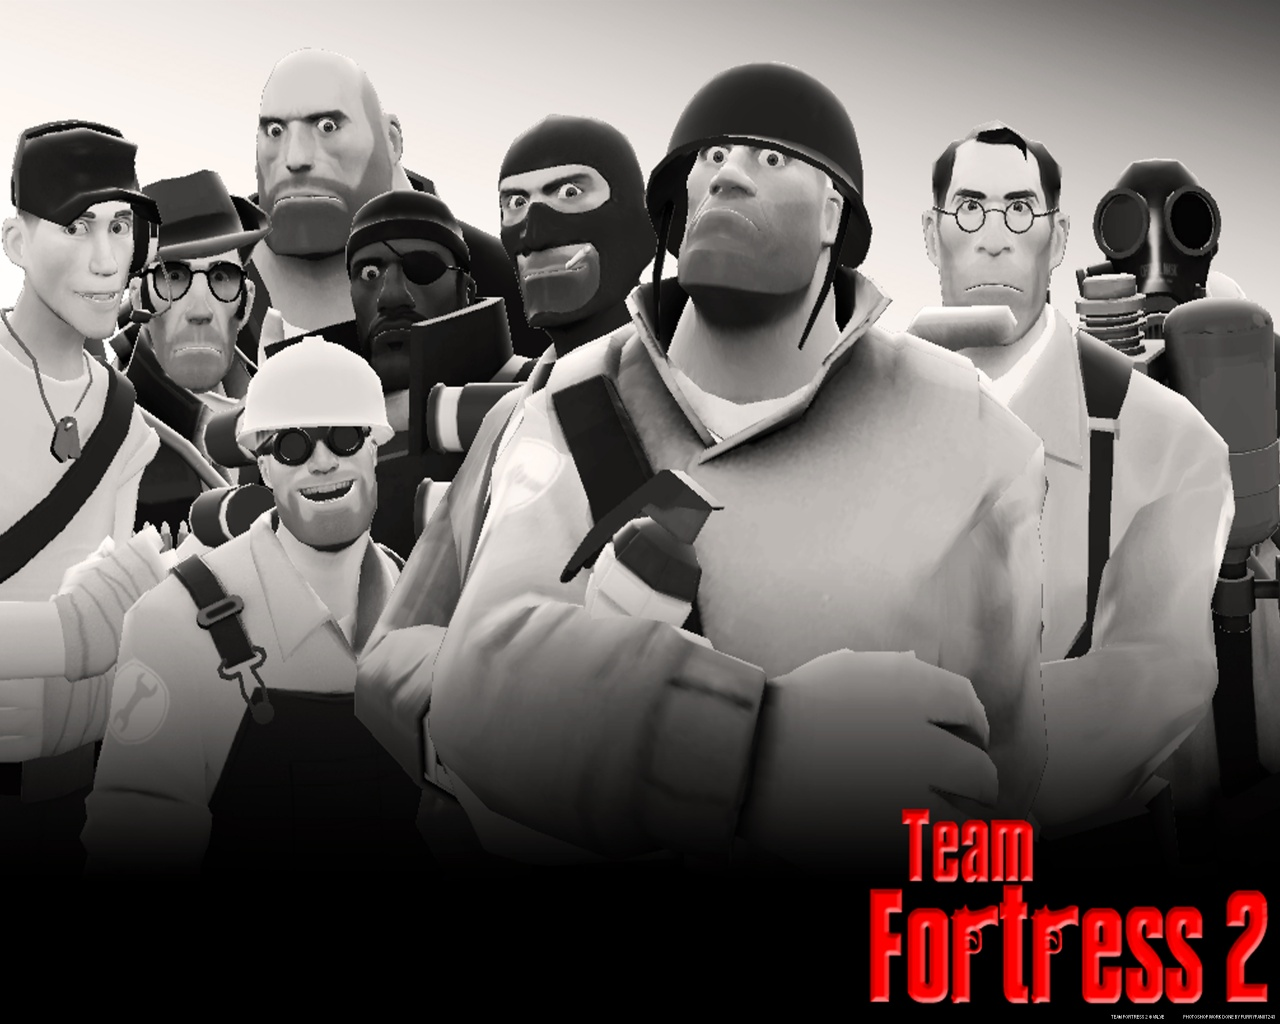 Fin de semana largo junto a Team Fortress 2 [EVENTOS]